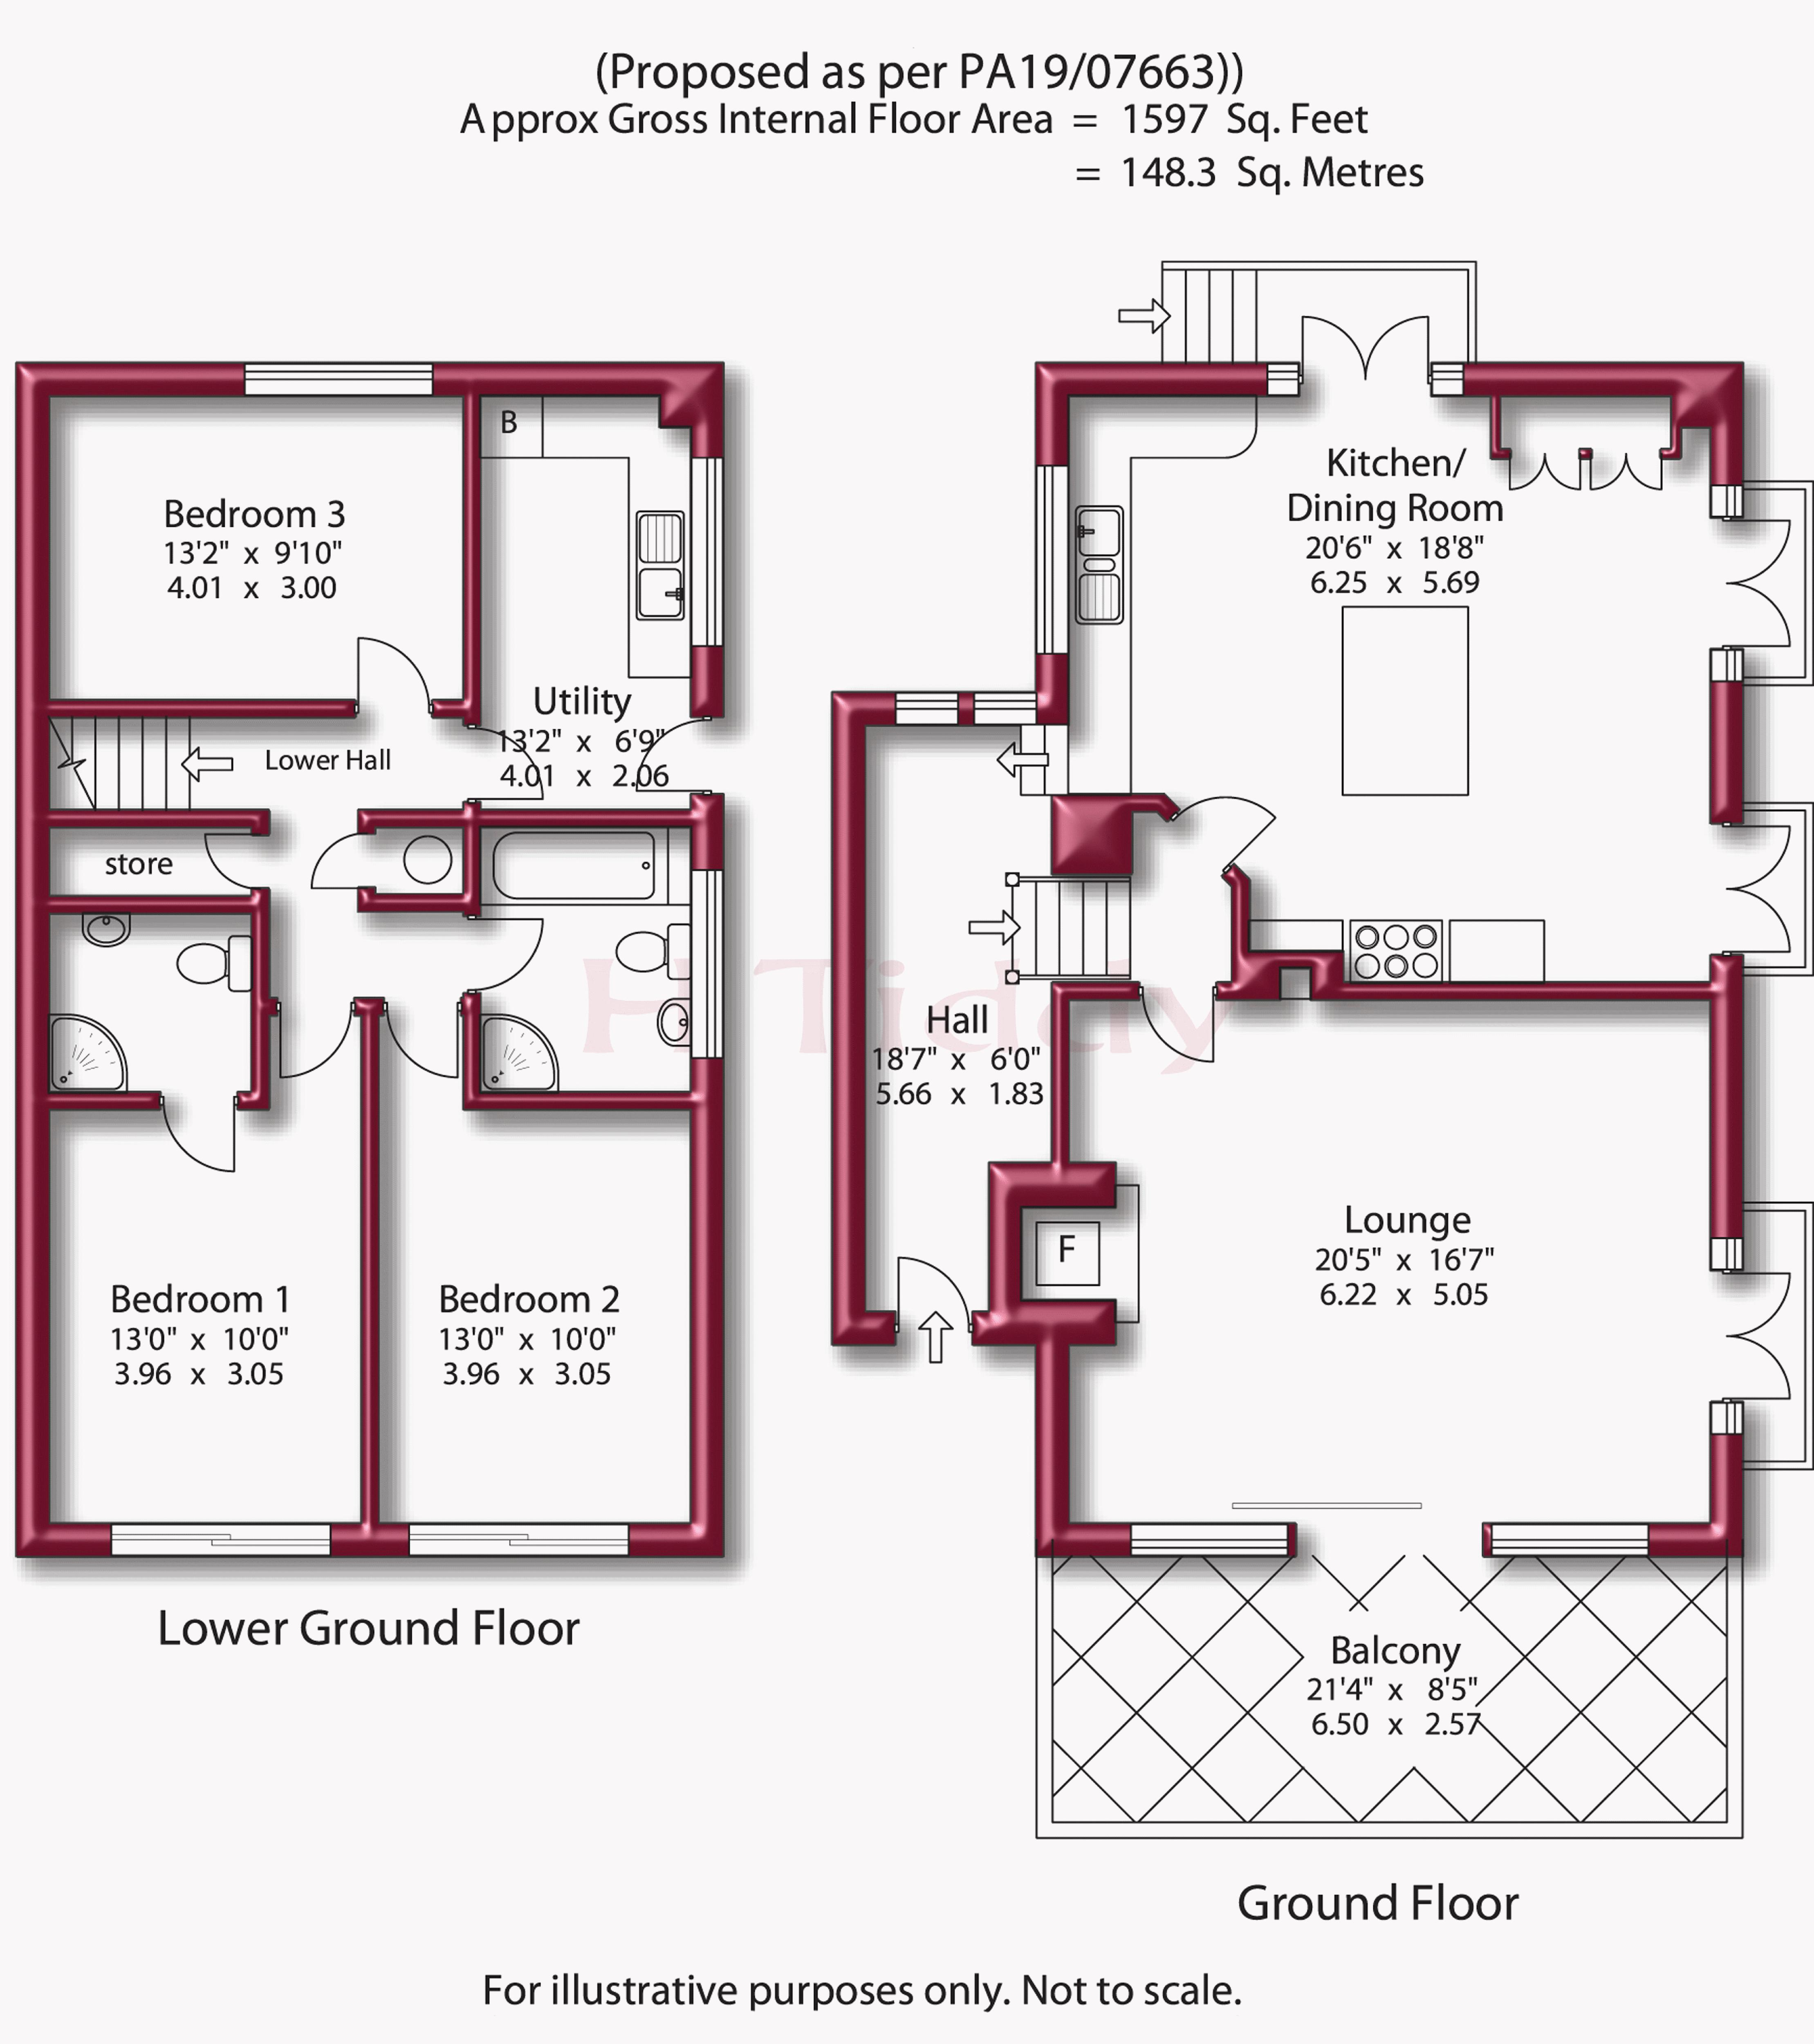 PROPOSED ACCOMMODATION